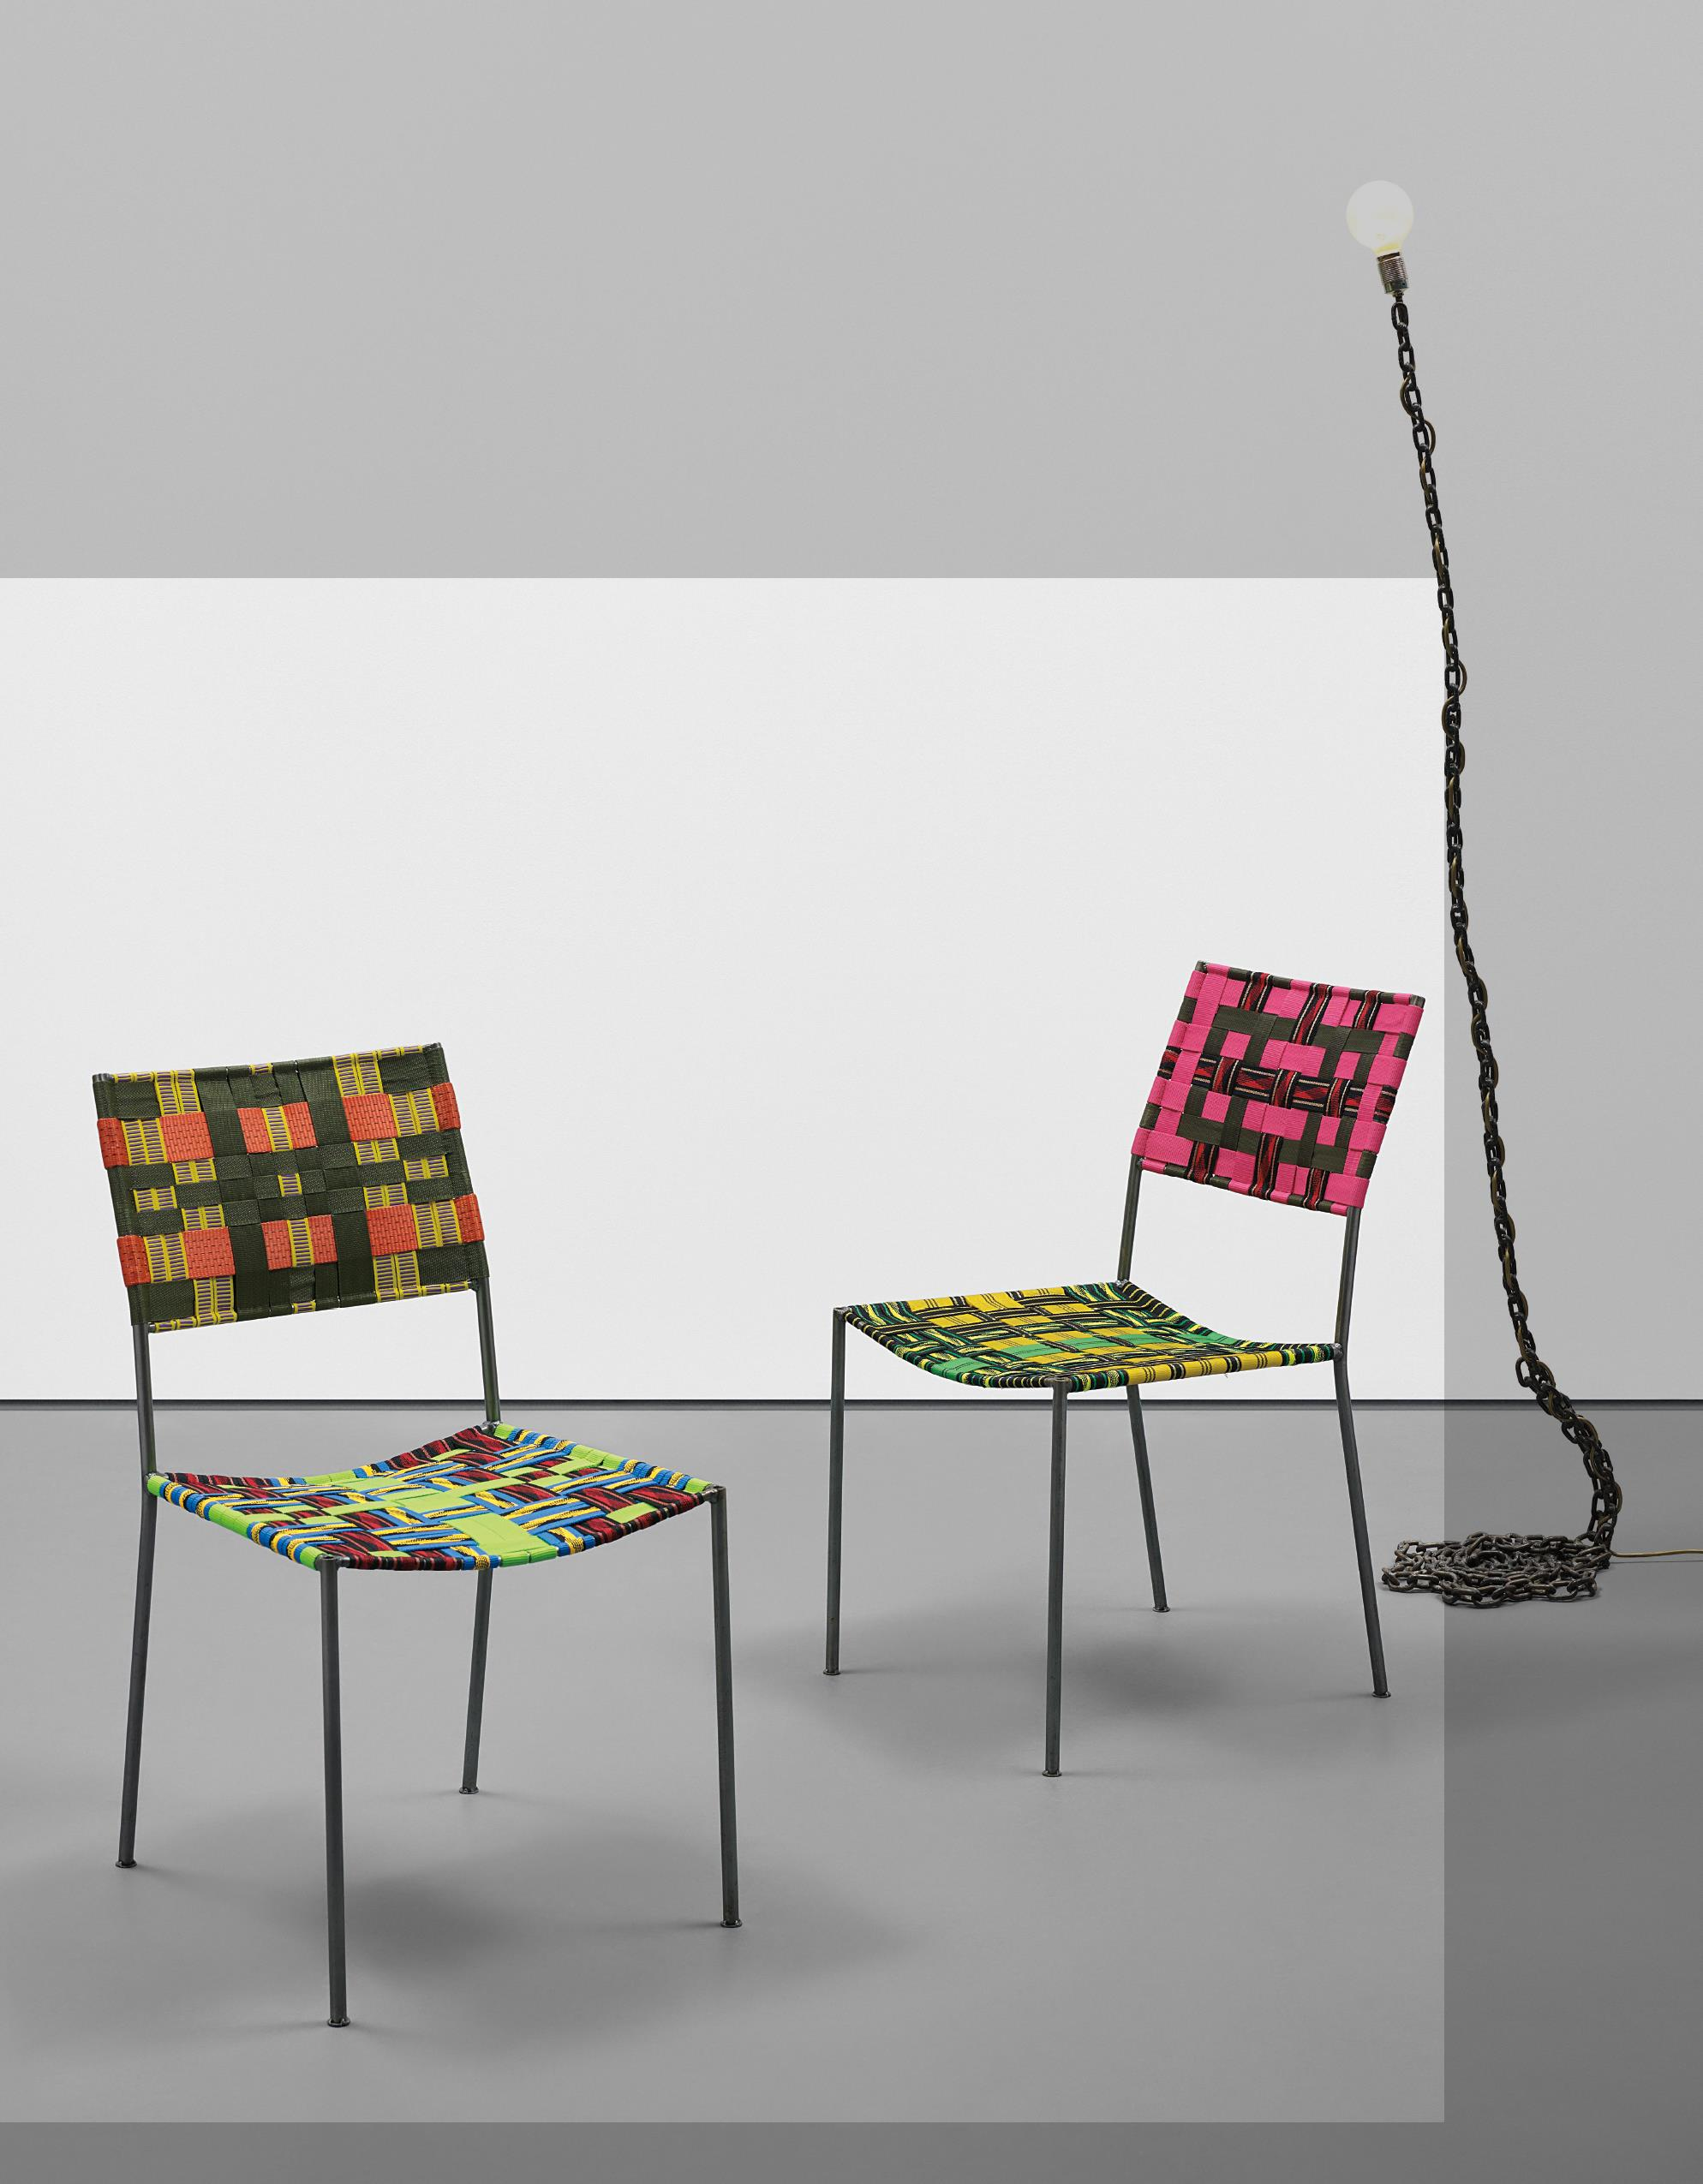 Franz West-Two Works: (I-II) Onkel Stuhl (Uncle Chair)-2009